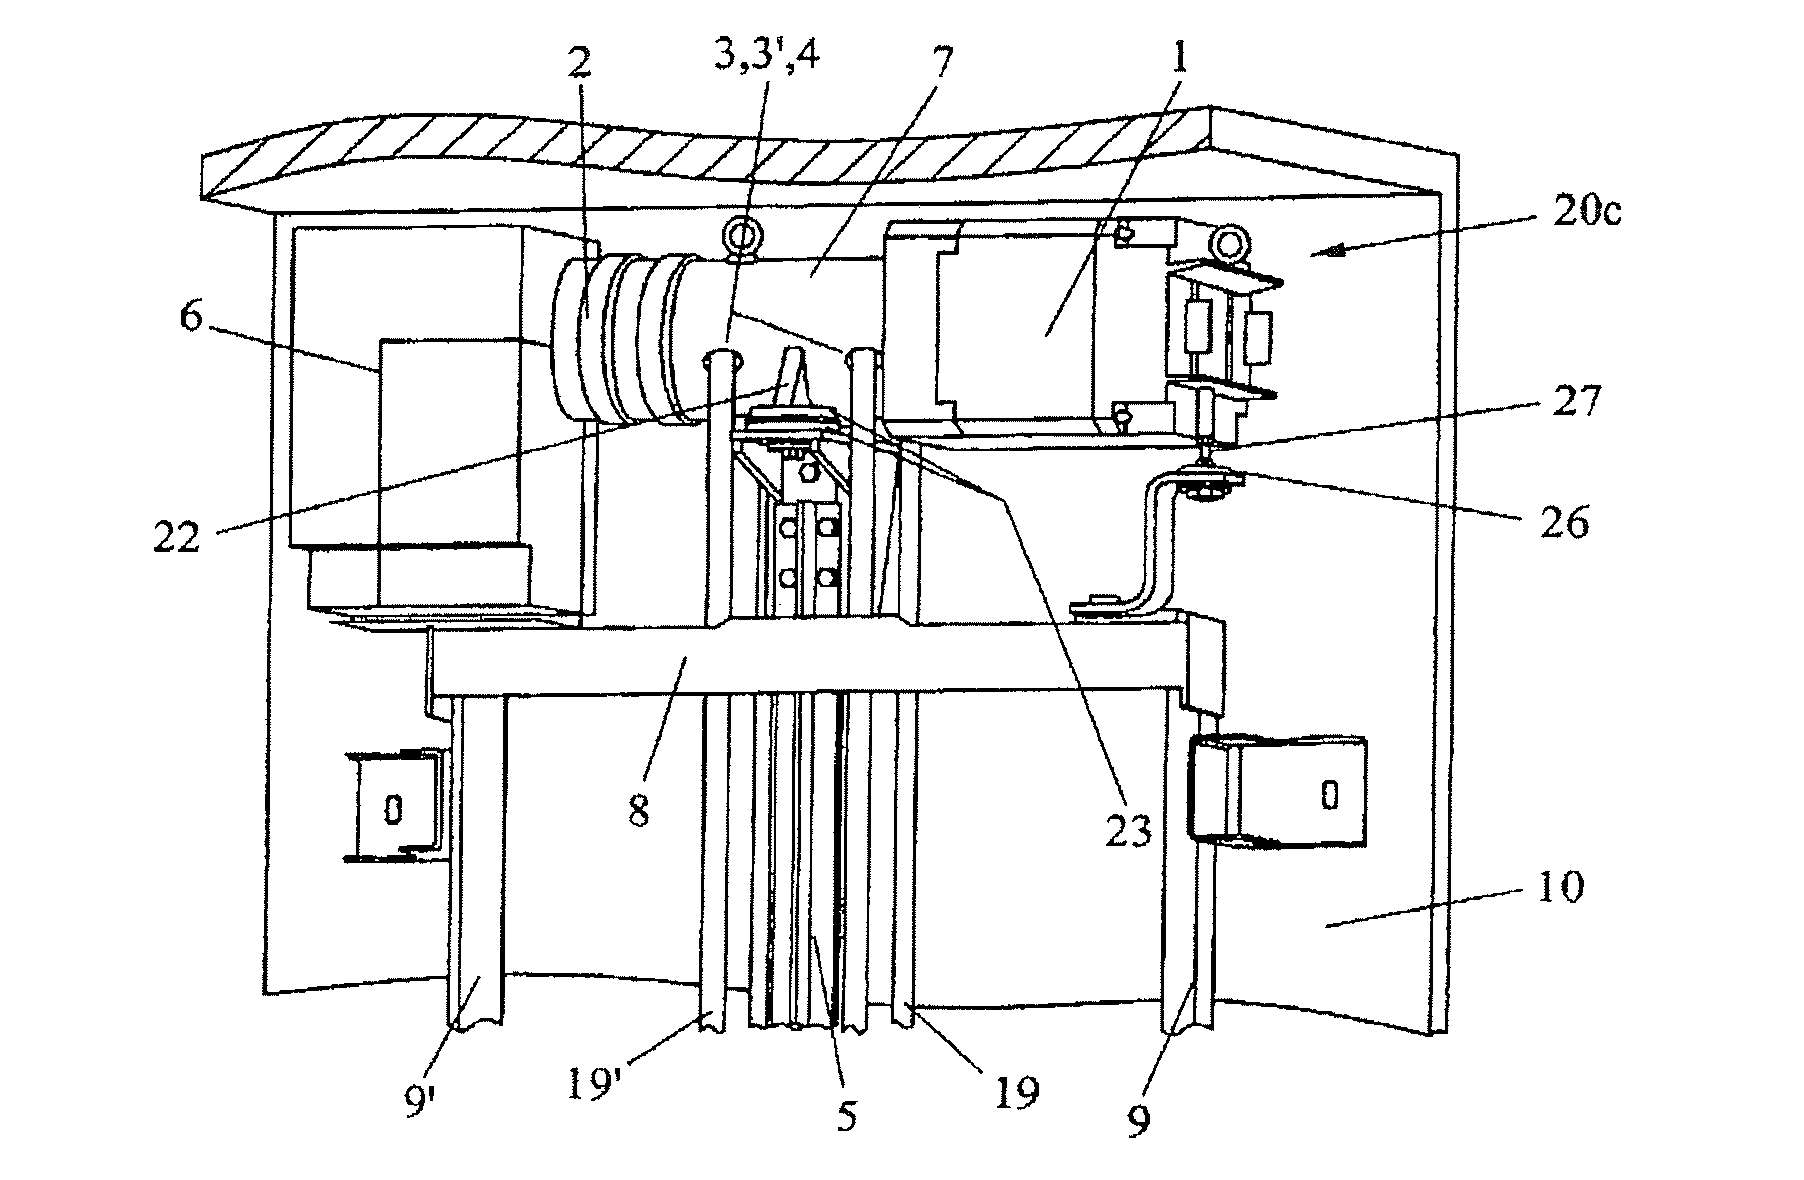 Elevator Installation Manual : Patent us drive motor for an elevator